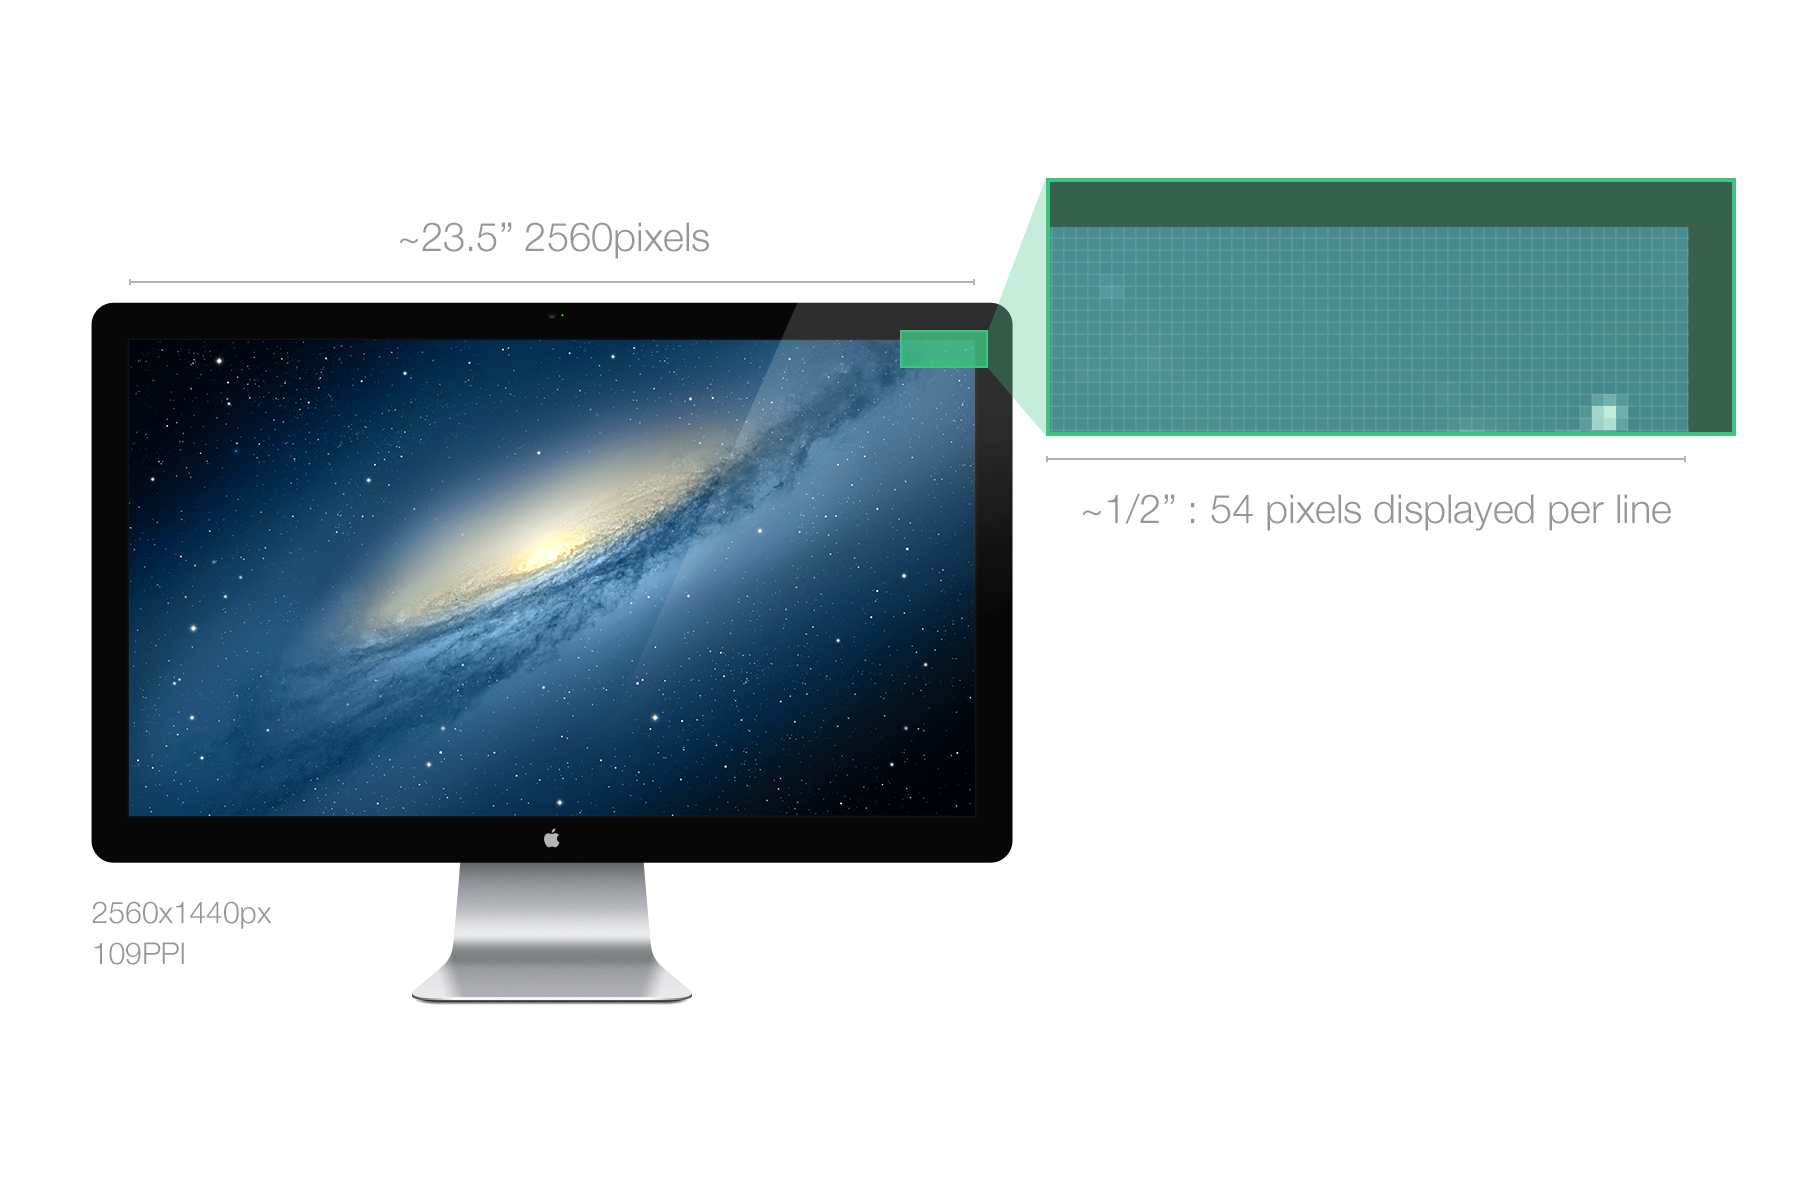 Resolution pixel and physical size